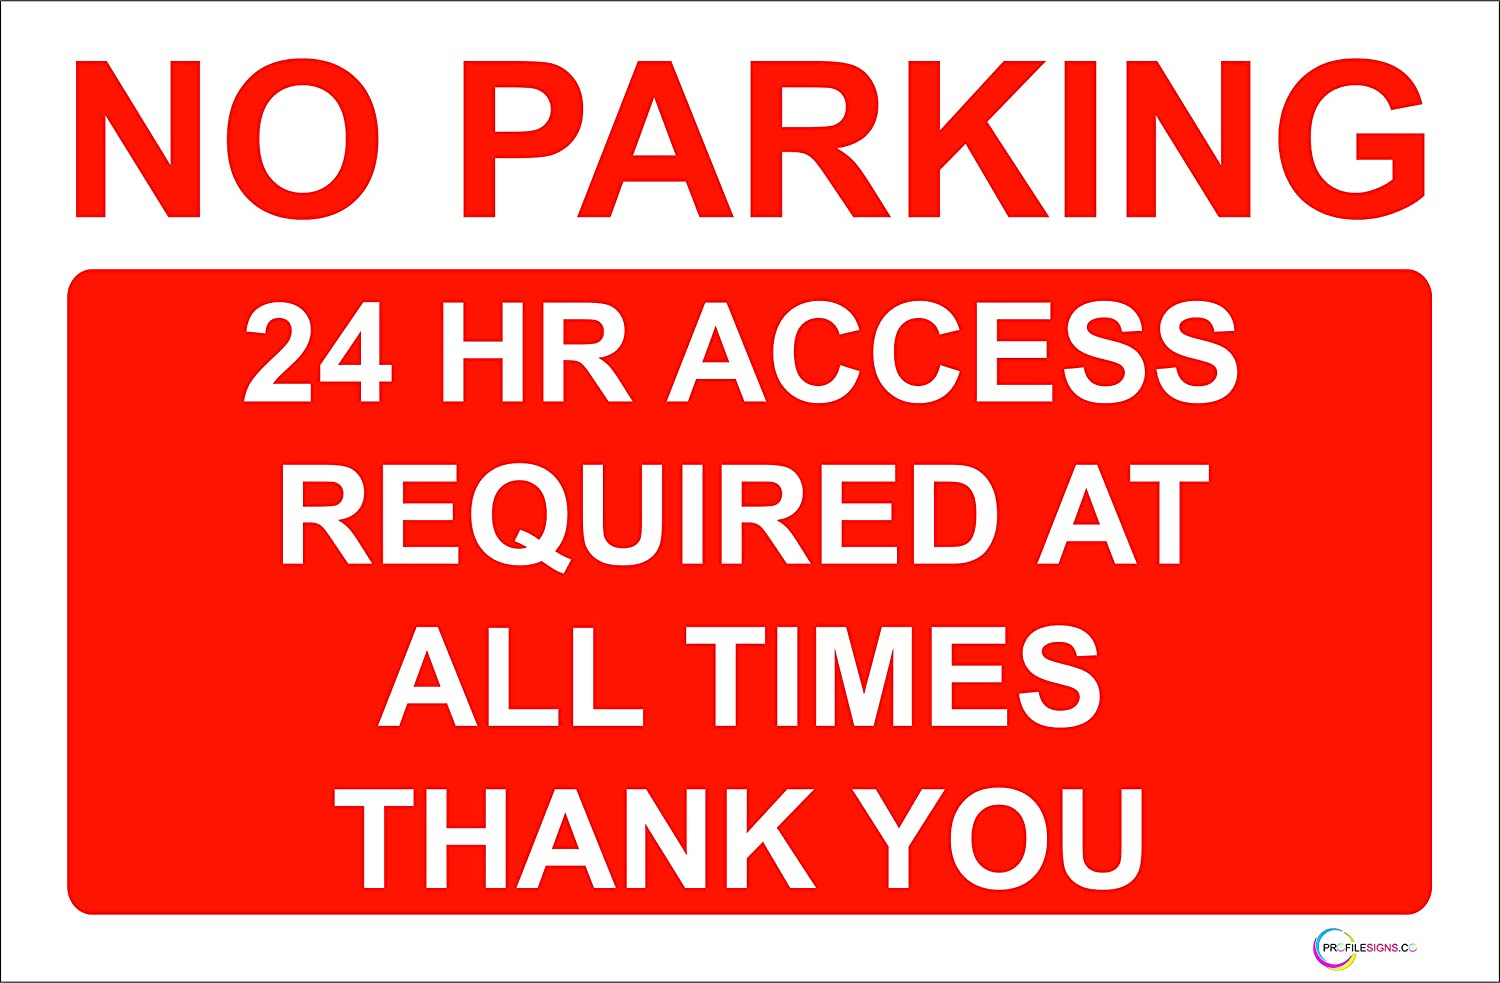 Rigid Pvc No Parking 24 Hour Access Required